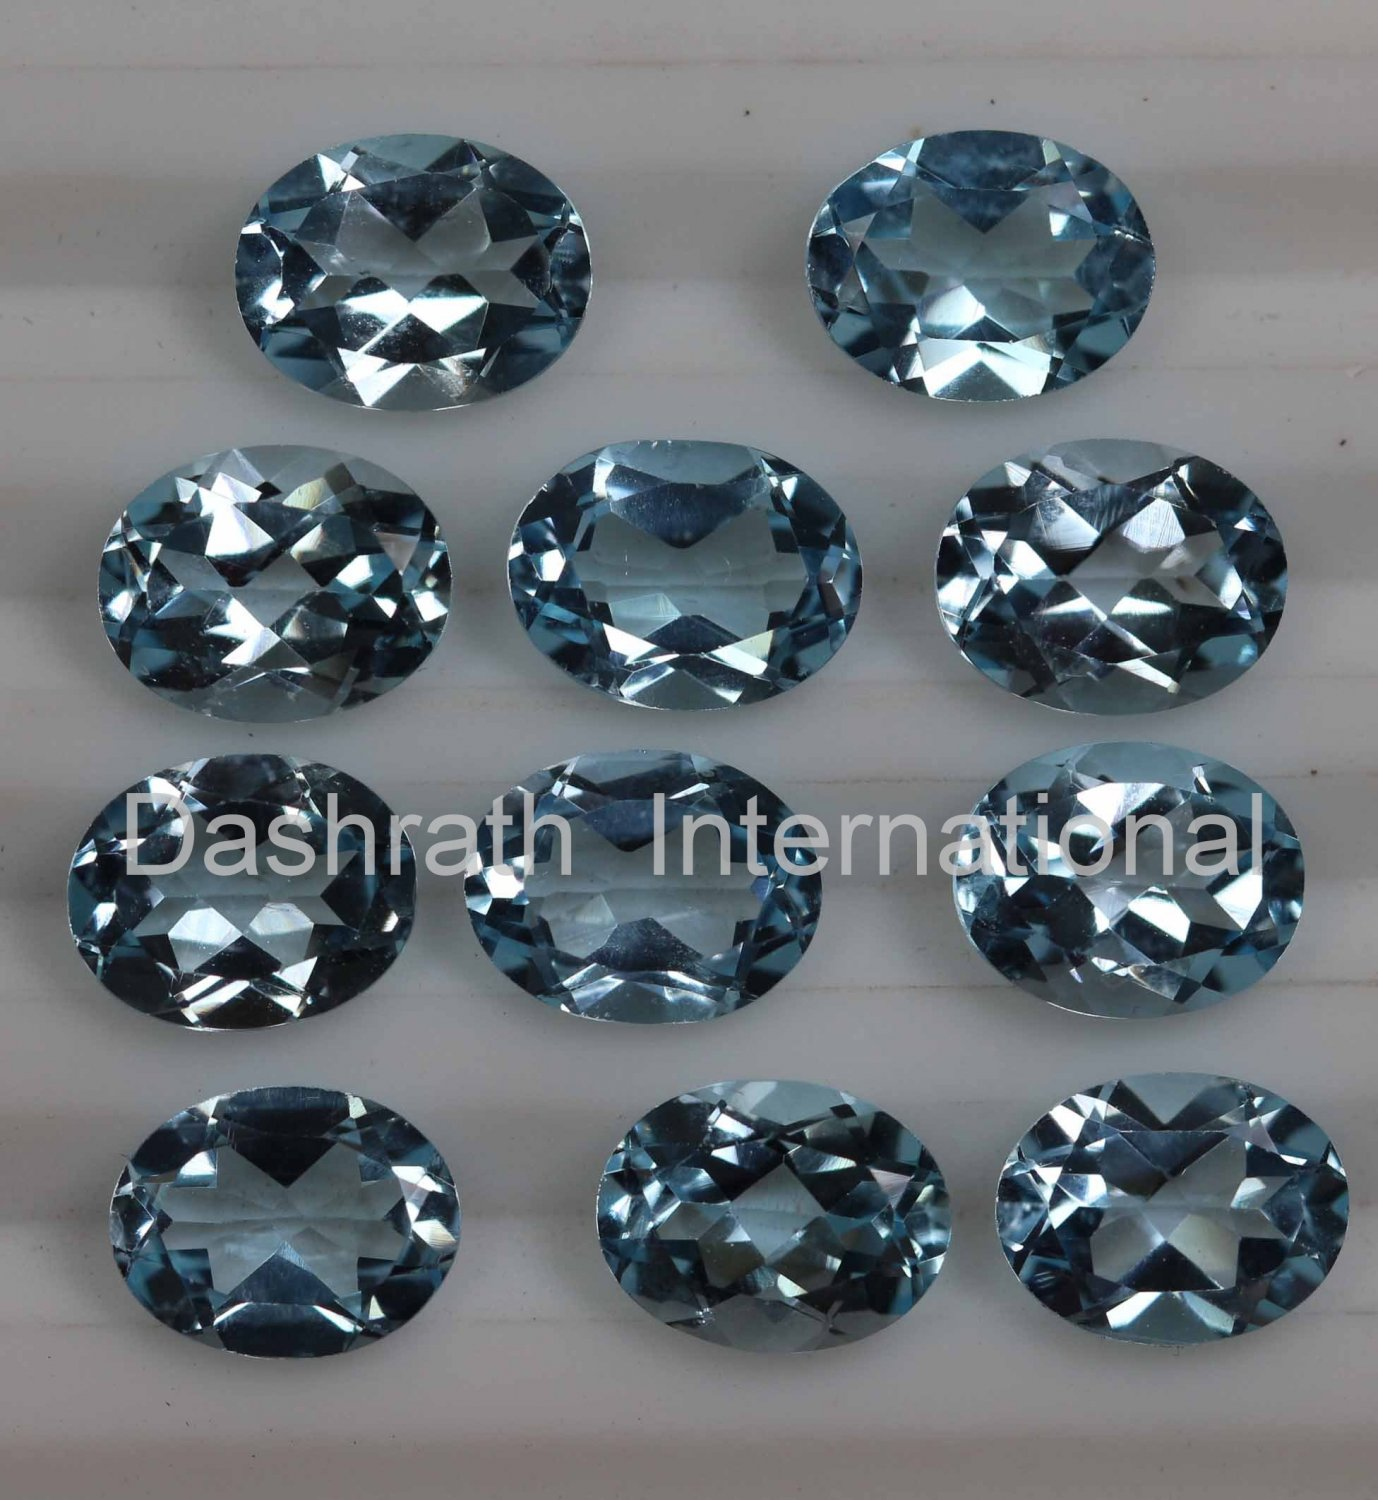 4x3mm Natural Sky Blue Topaz Faceted Cut Oval  100 Pieces Lot Blue Color  Top Quality Loose Gemstone